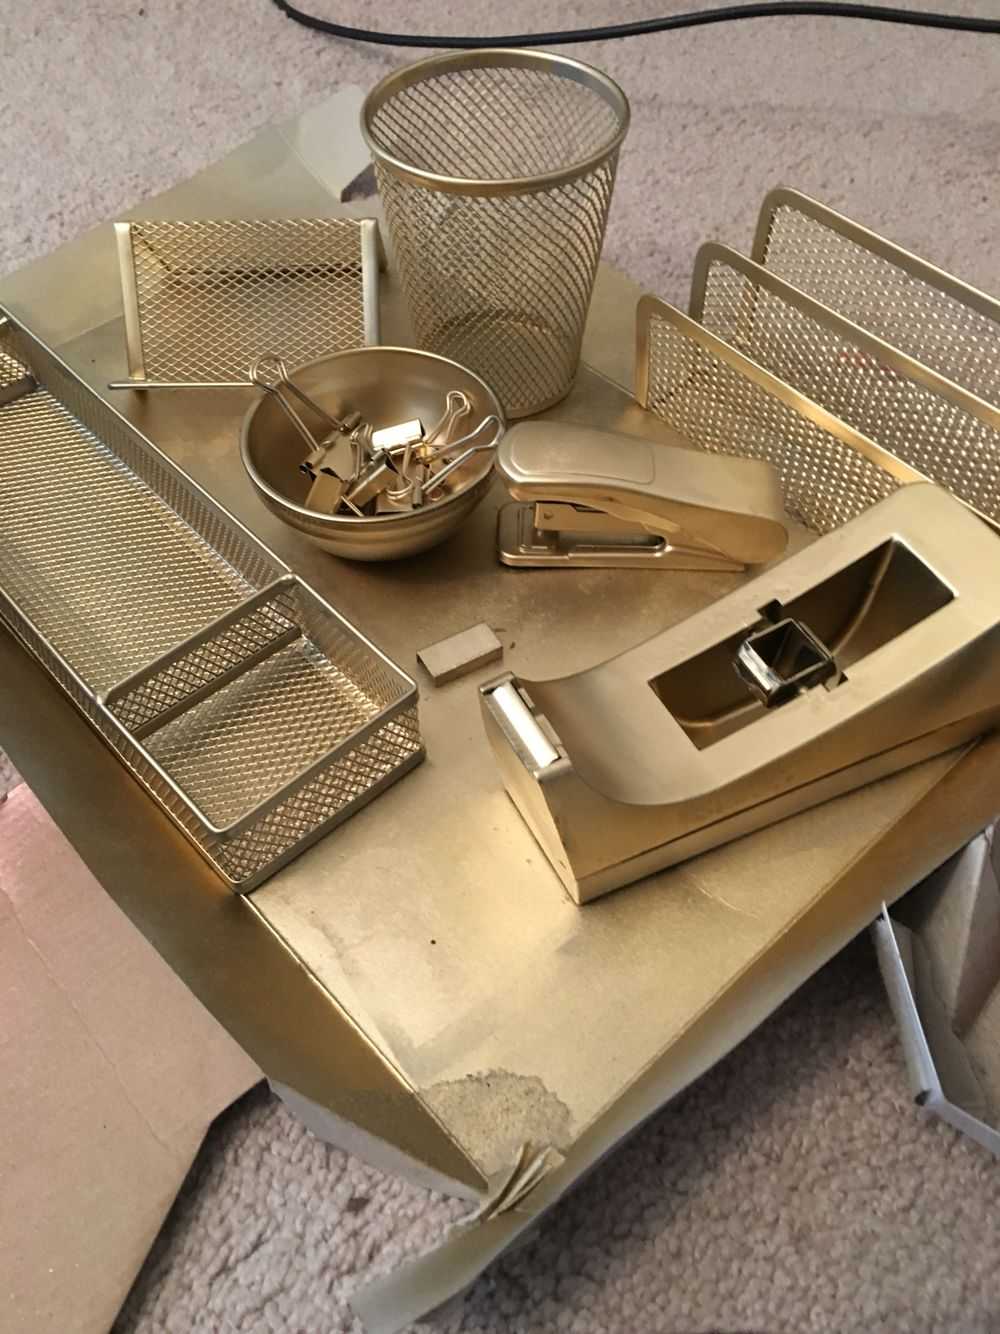 Metallic Gold Spray Painted Office Supplies From Dollar Tree More